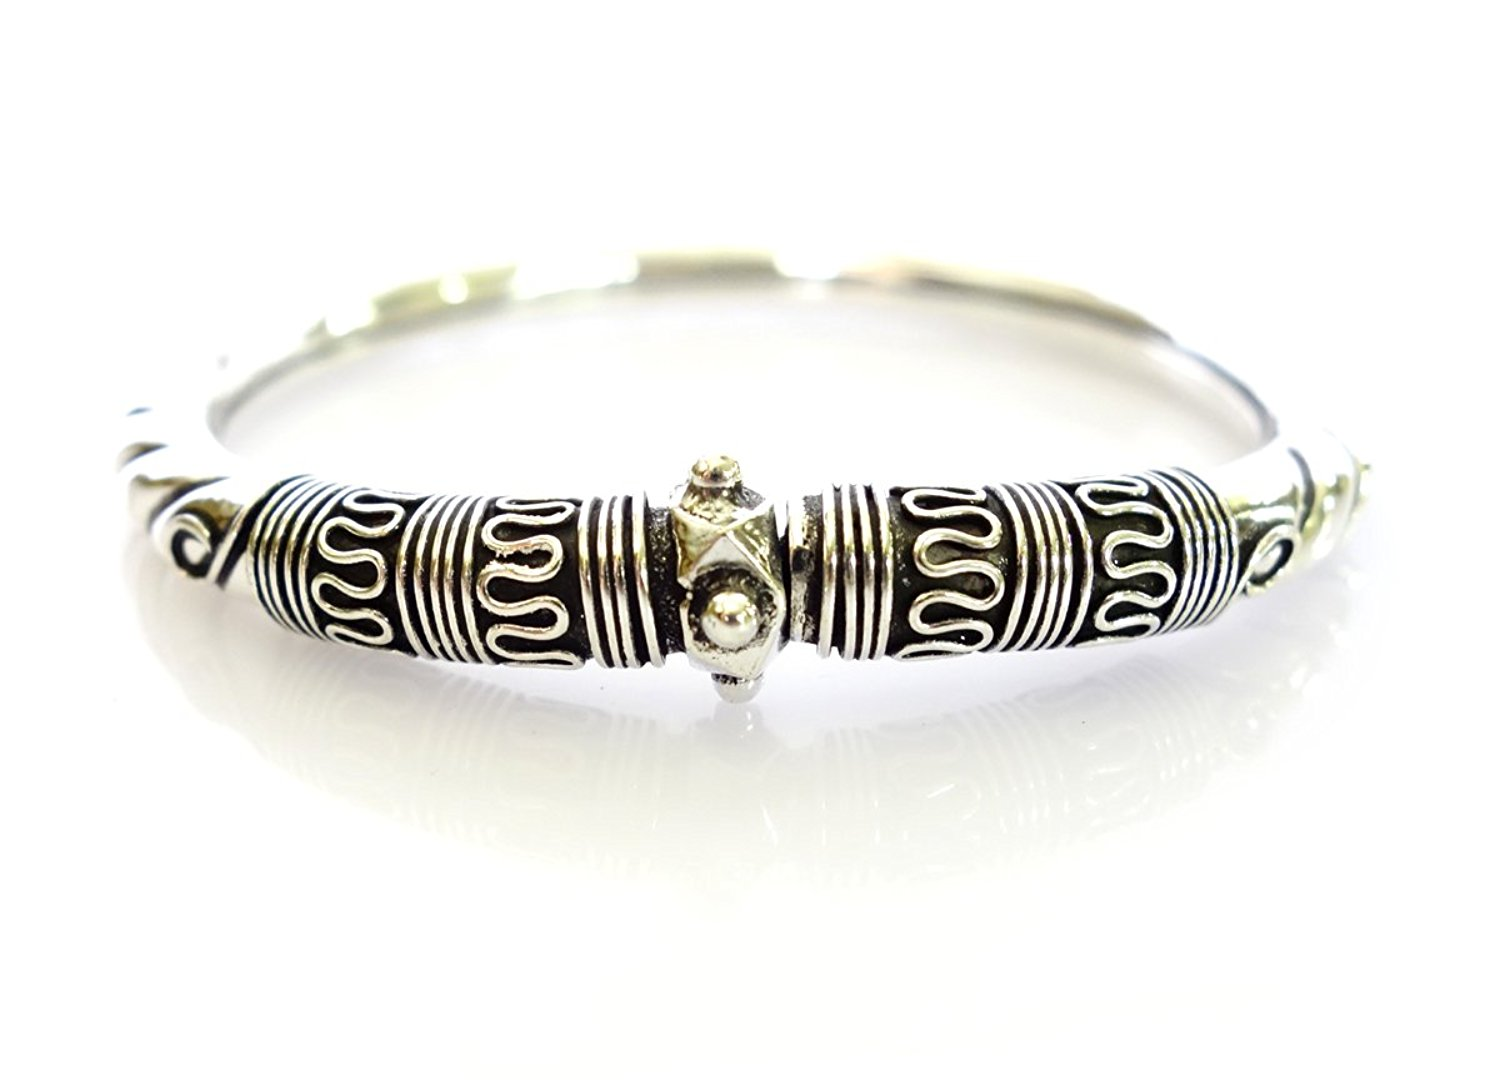 FINE HANDMADE 925 STERLING SILVER BANGLE BRACELET FOR WOMEN VINTAGE TRIBAL BRACELET BY TIBETAN SILVER